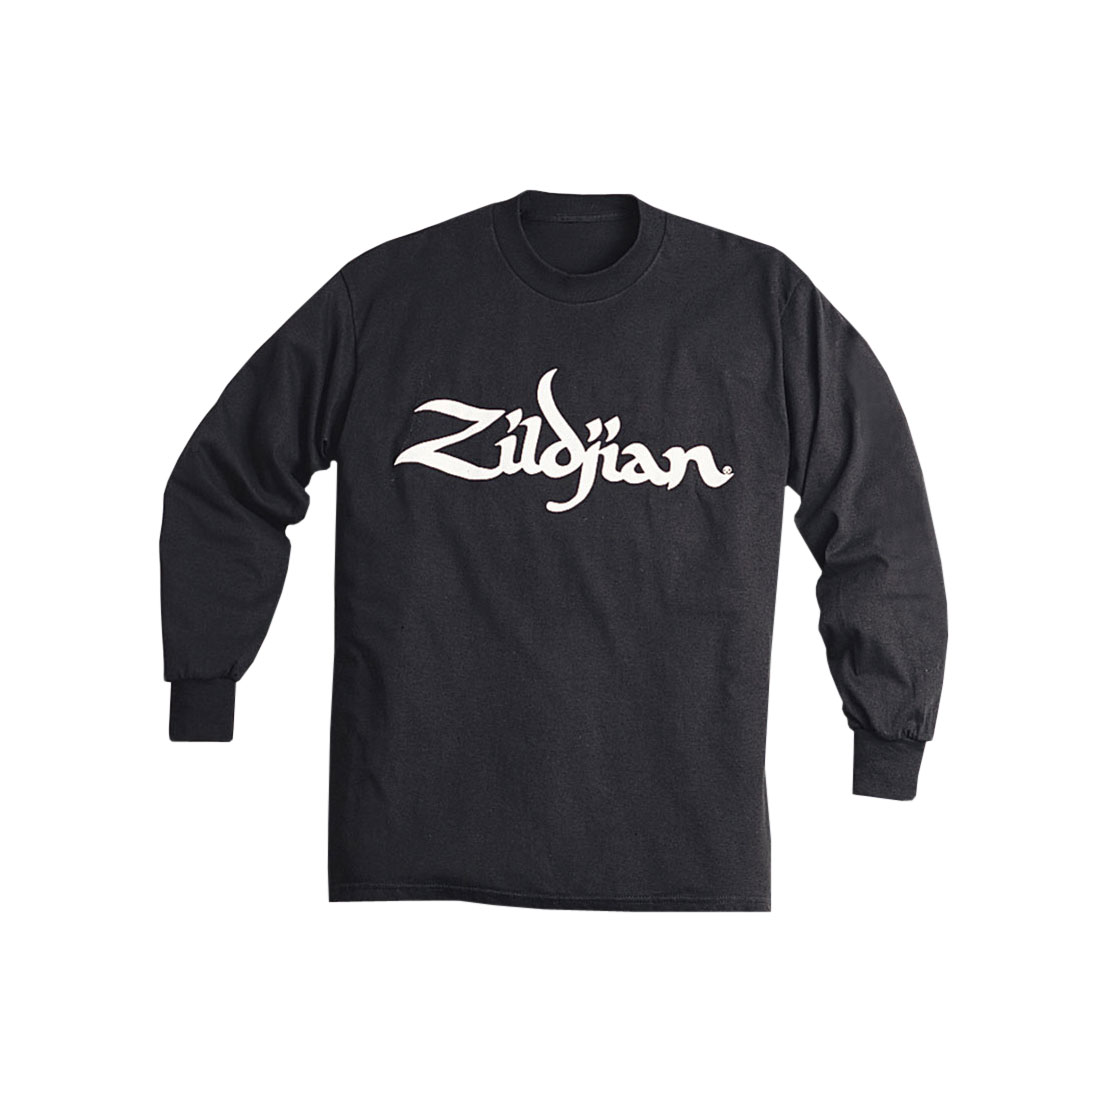 Zildjian Long Sleeve T-Shirt